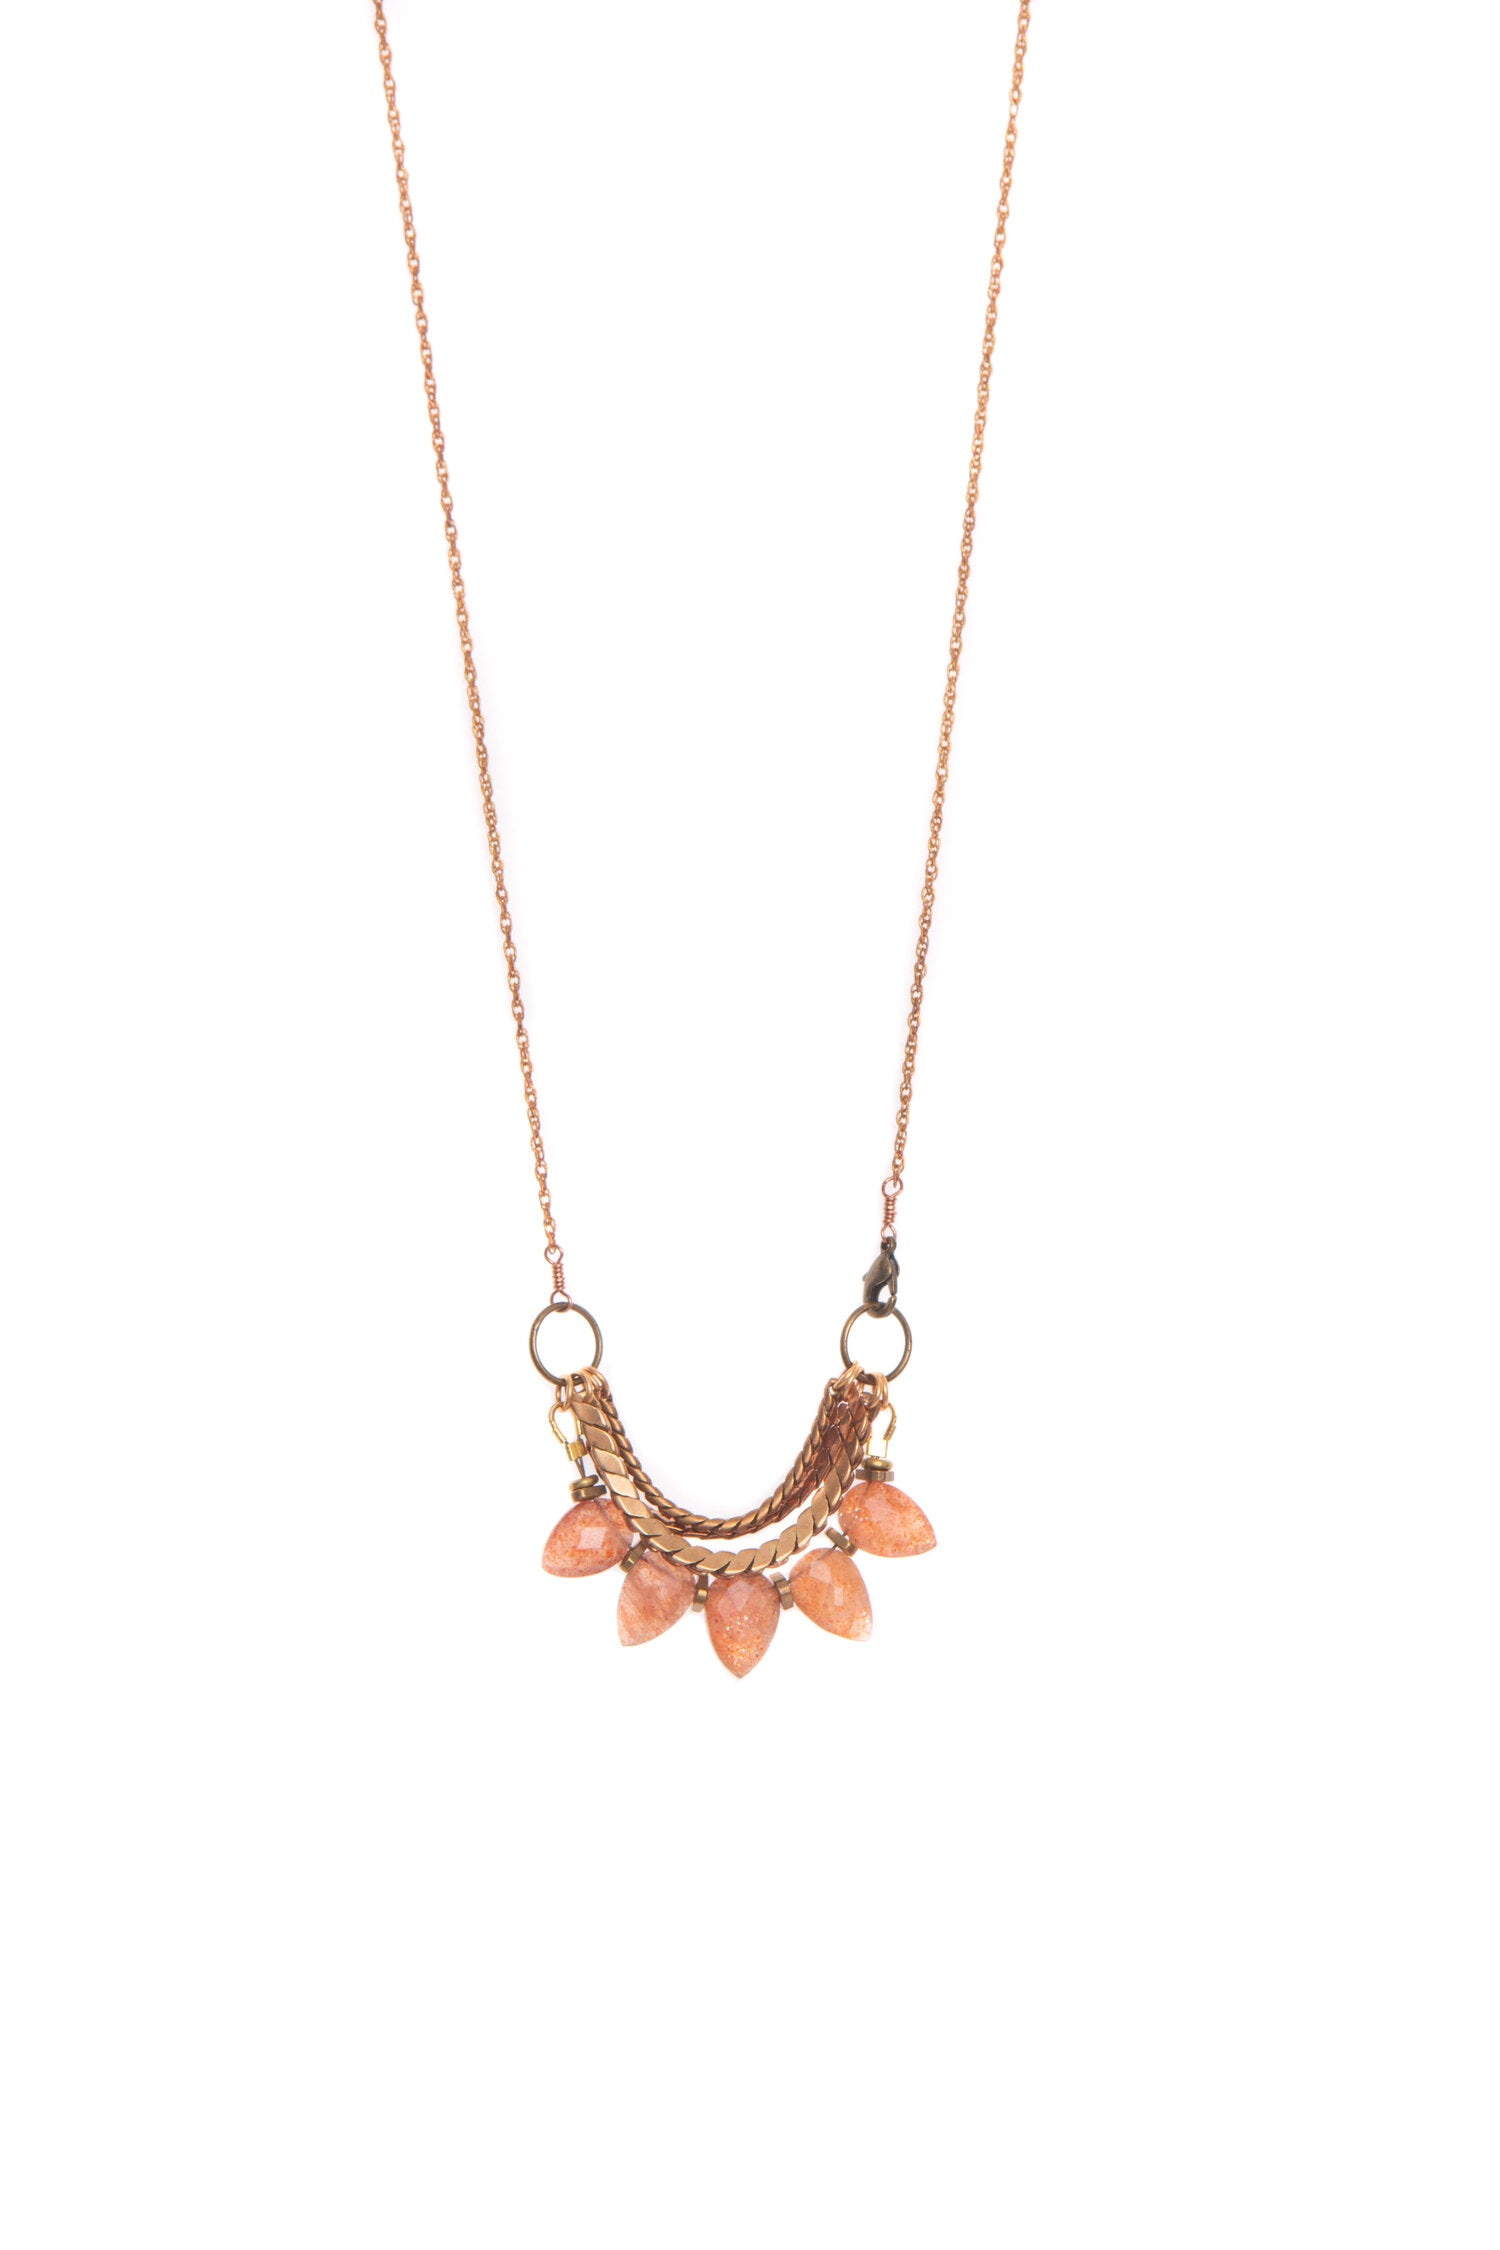 Hailey Gerrits // Lena Necklace